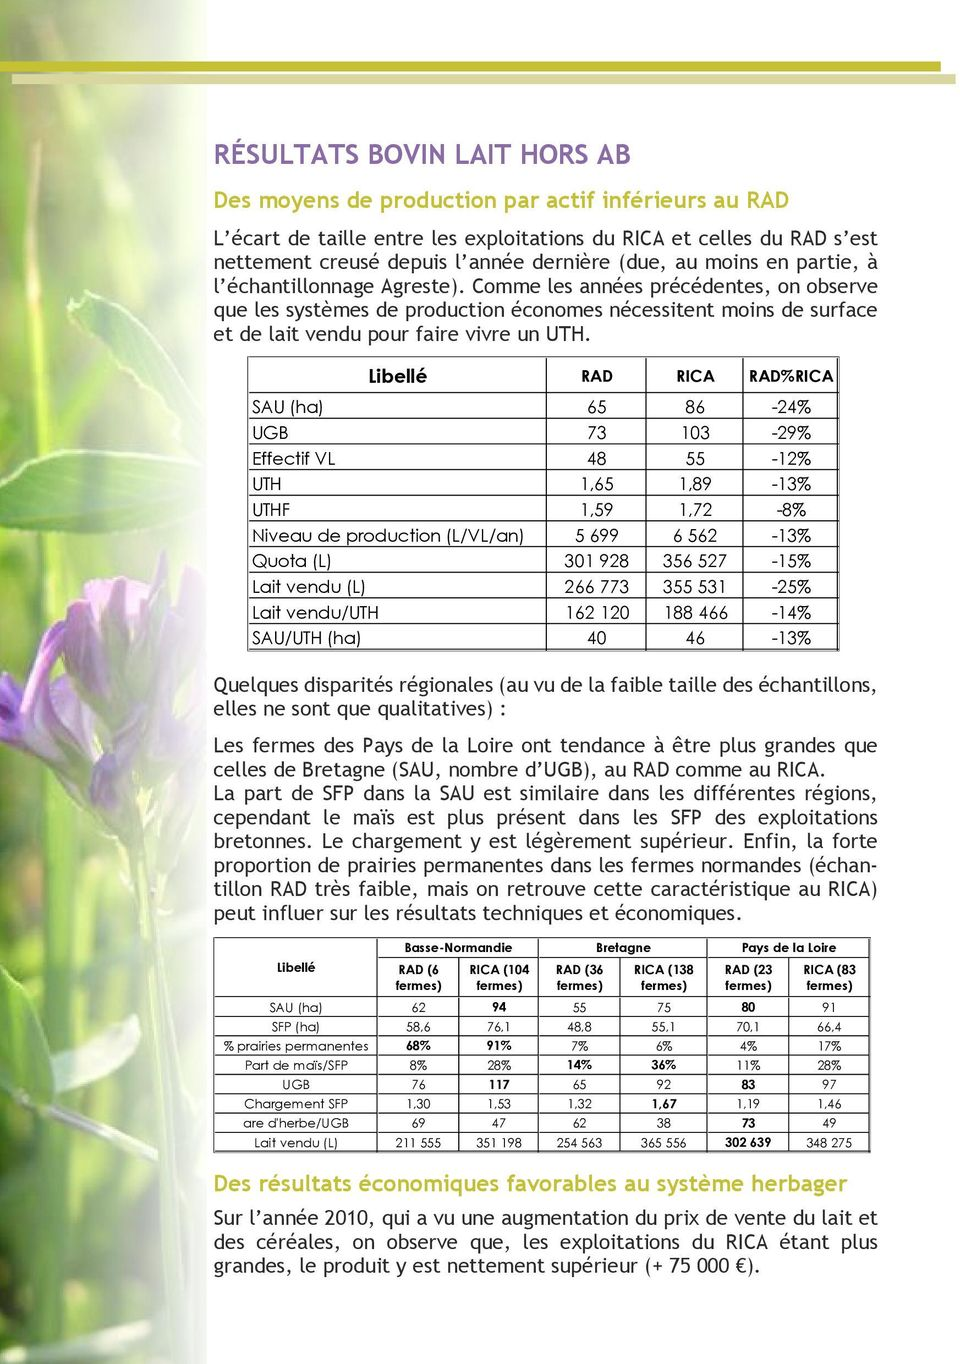 Libellé % SAU (ha) 65 86-24% UGB 73 103-29% Effectif VL 48 55-12% UTH 1,65 1,89-13% UTHF 1,59 1,72-8% Niveau de production (L/VL/an) 5 699 6 562-13% Quota (L) 301 928 356 527-15% Lait vendu (L) 266